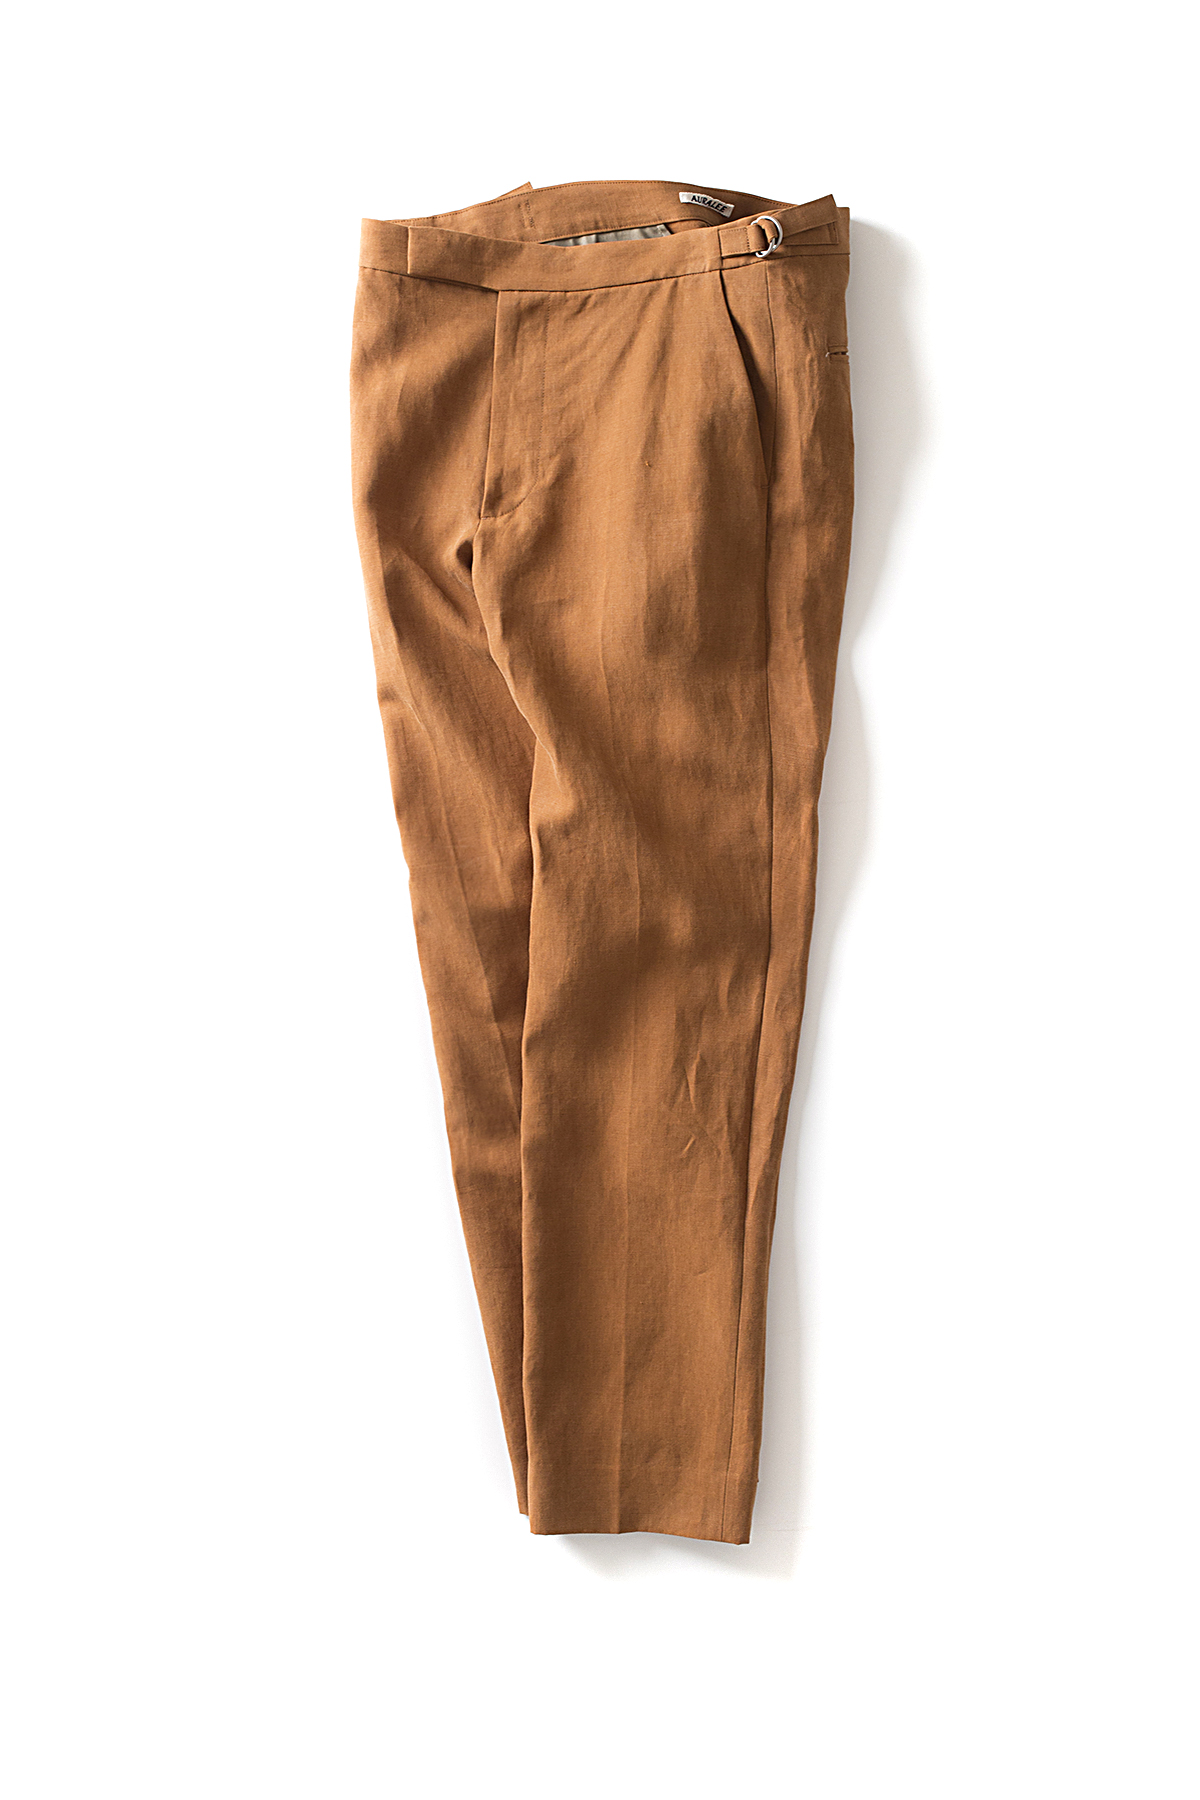 Auralee : Washed Linen Slacks (Brown)